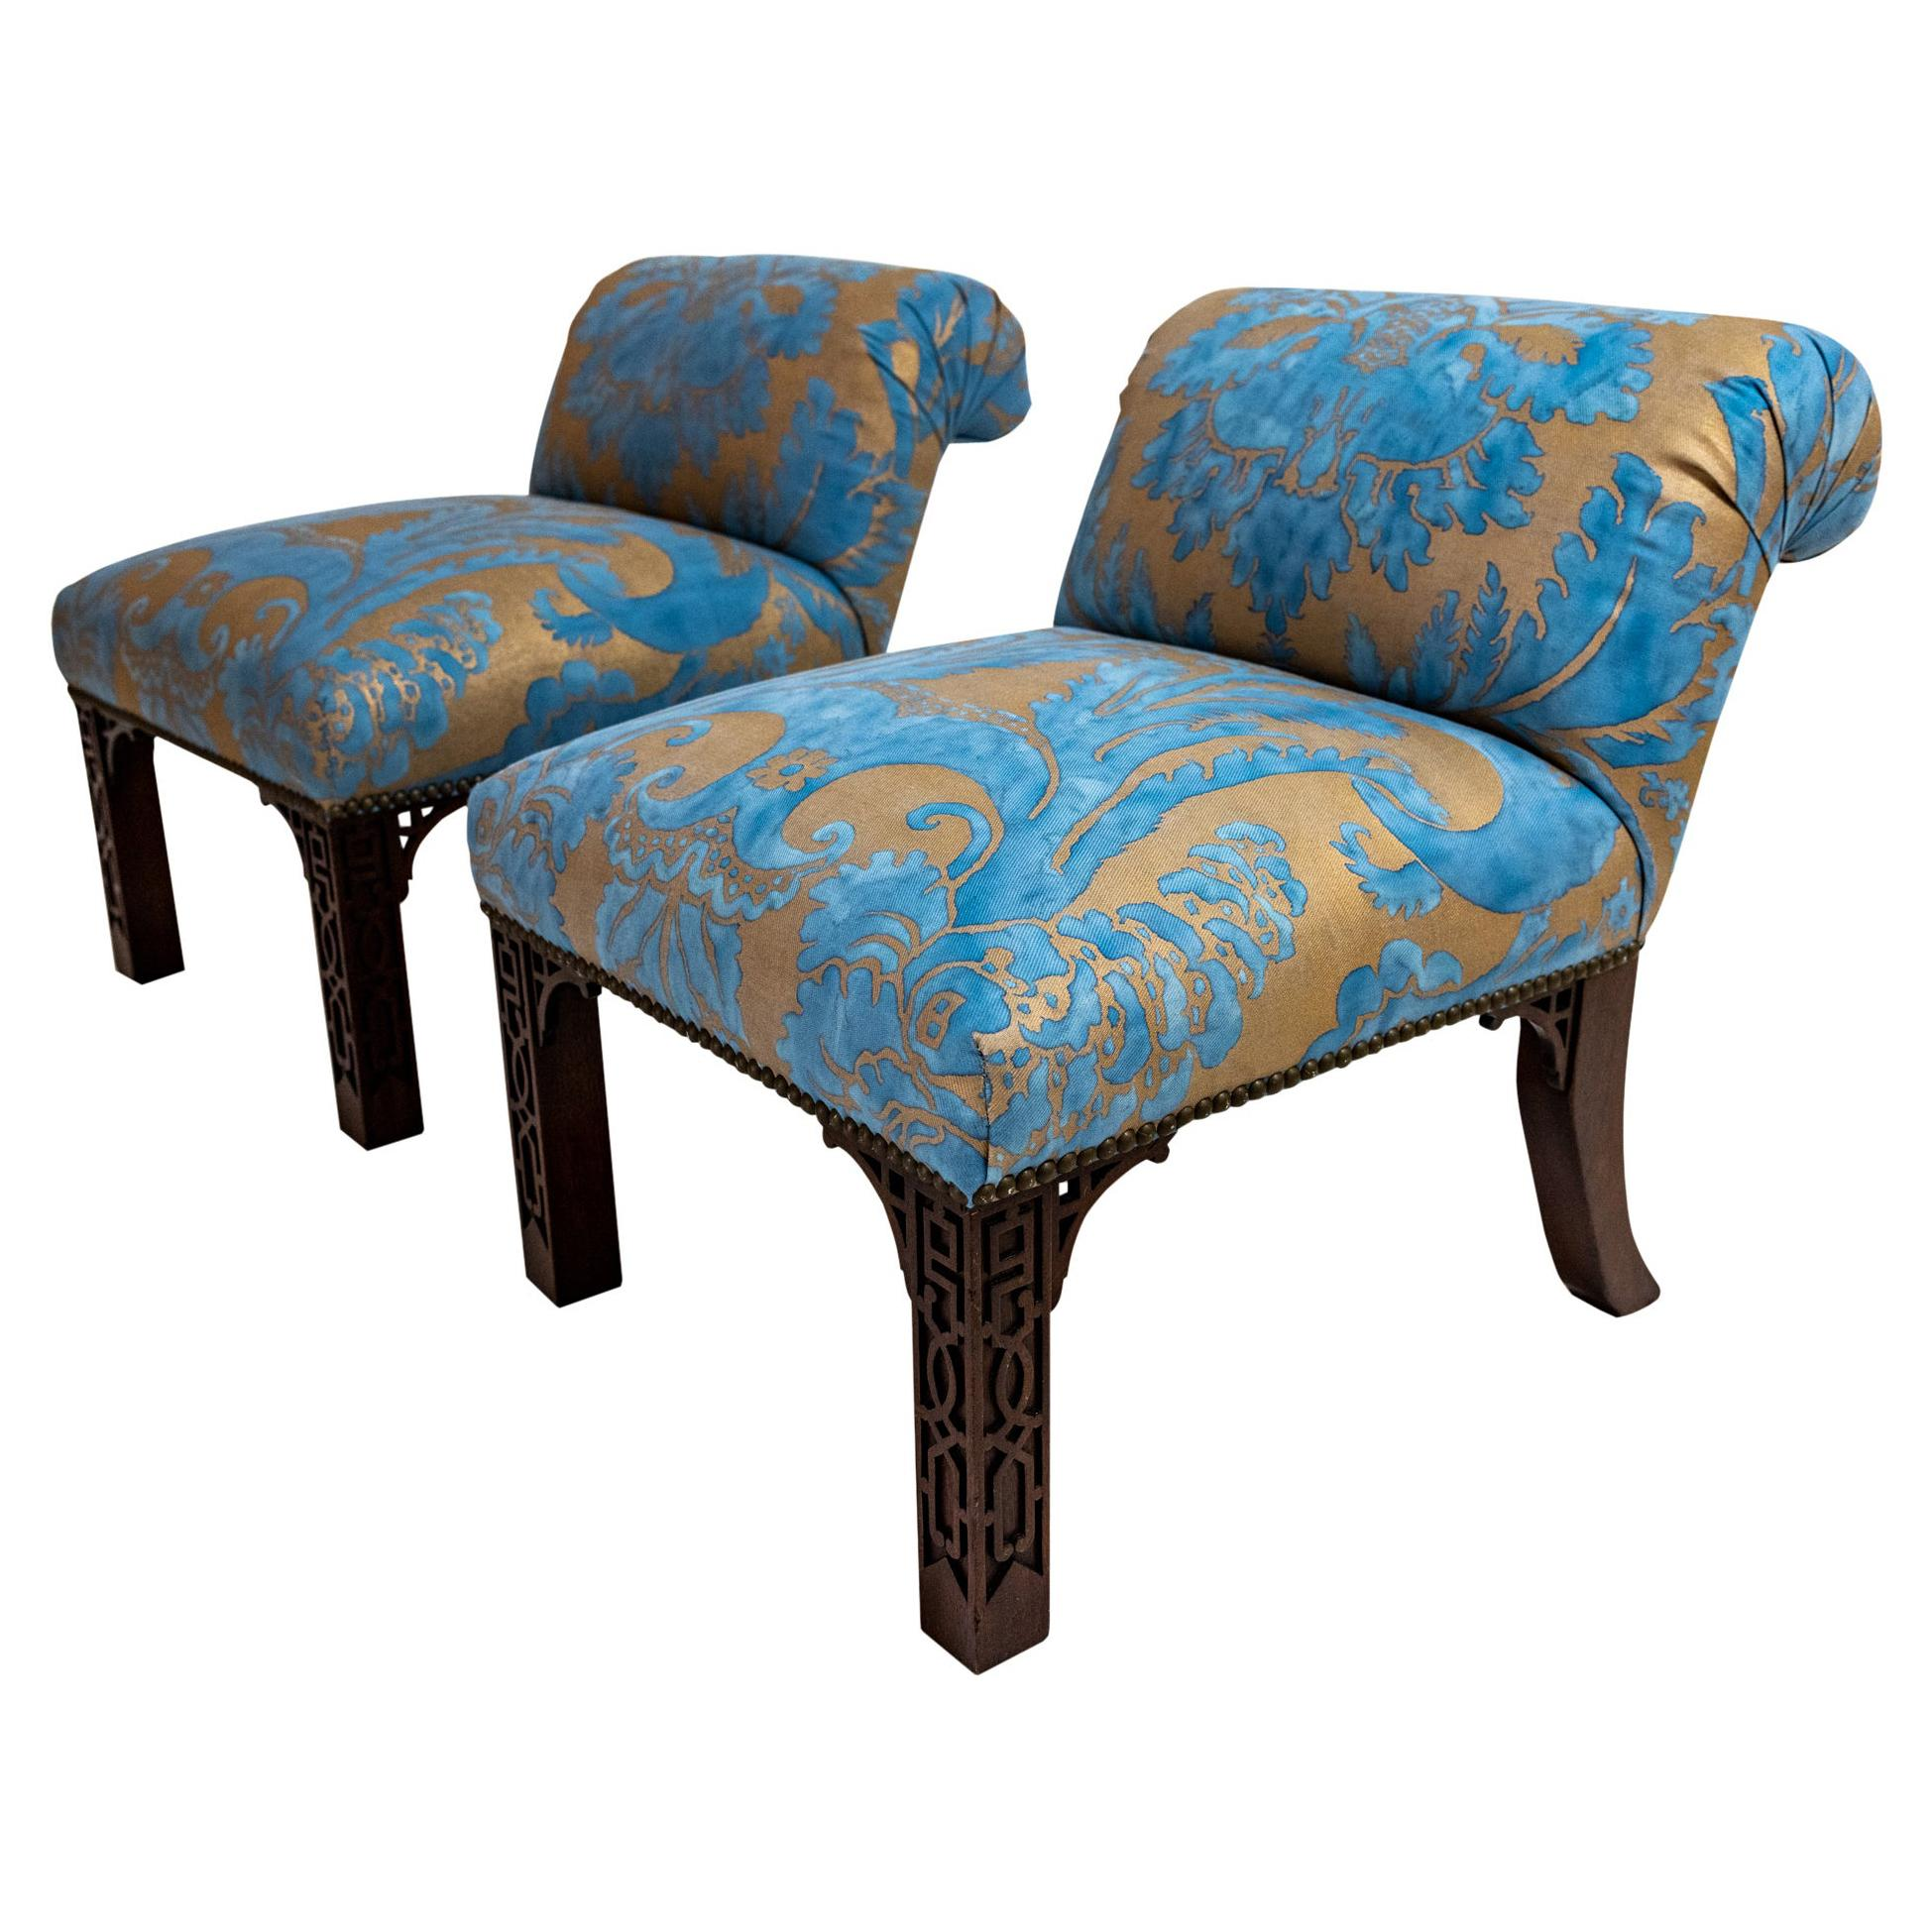 Pair of Elbow Chairs Designed by Billy Haines